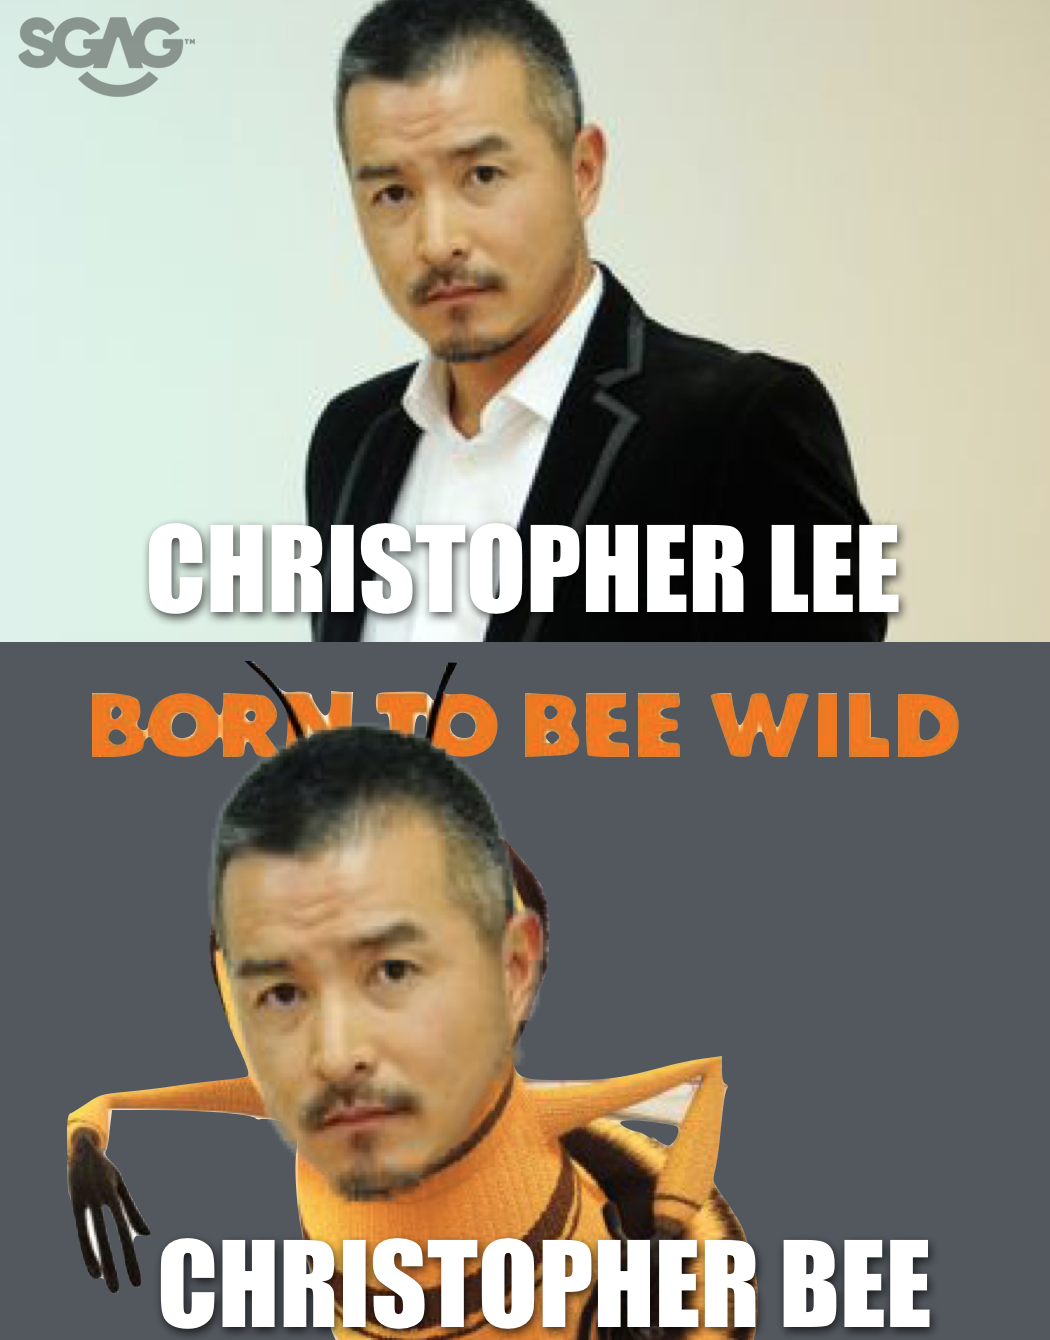 This Collection Of Mediacorp Artiste Puns Are Just Too Funny